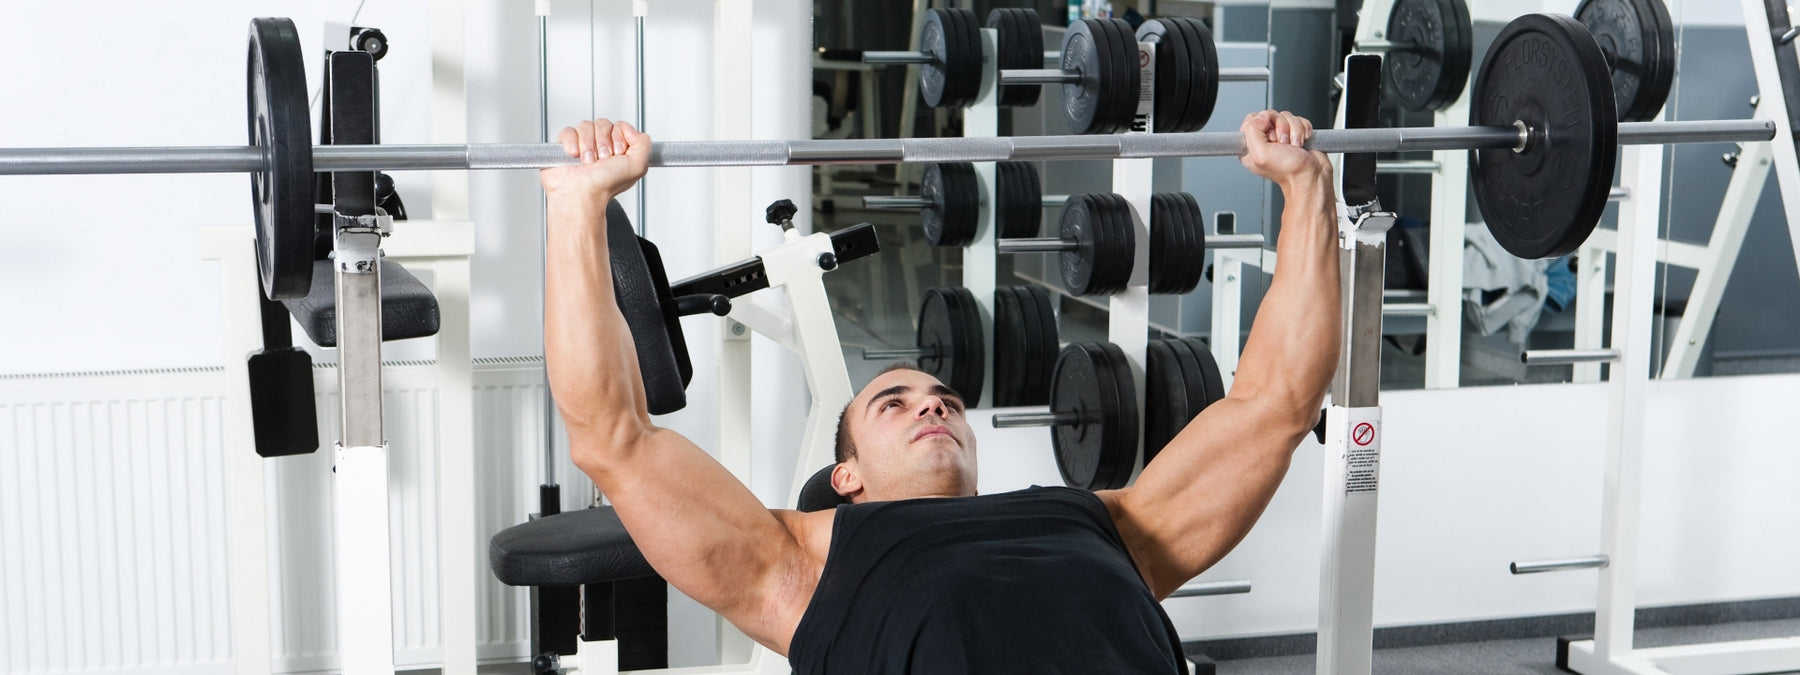 Incline Chest Press - Your Next Favorite Chest Exercise?